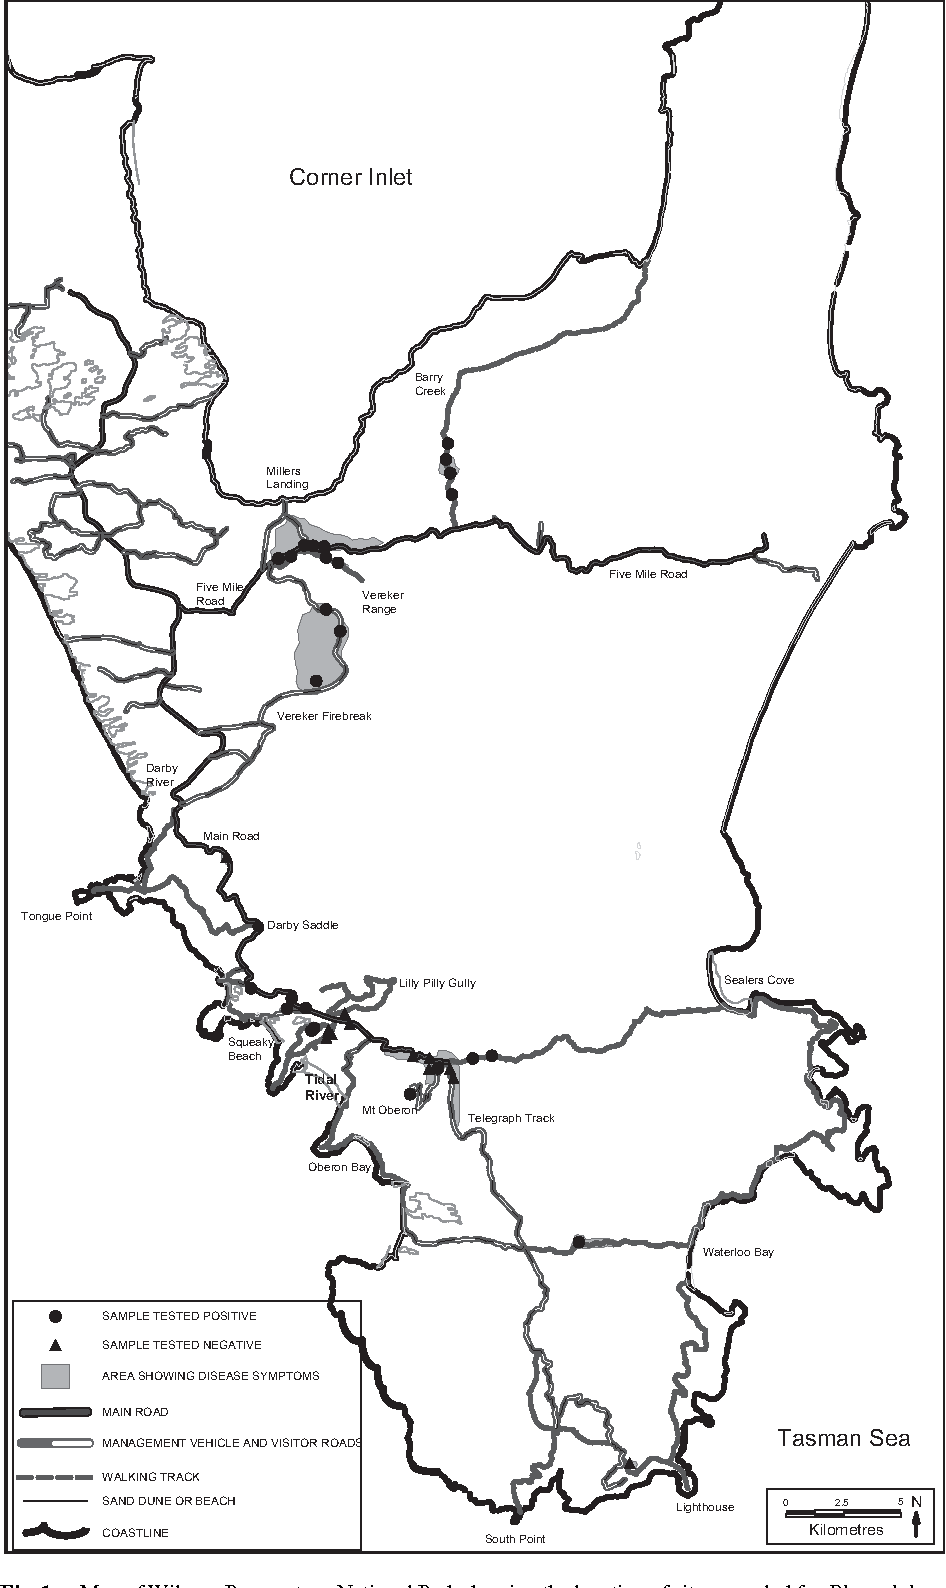 Fig. 1. Map of Wilsons Promontory National Park showing the location of sites sampled for Phytophthora cinnamomi. Soil sampling sites and areas showing symptoms of disease are shown.